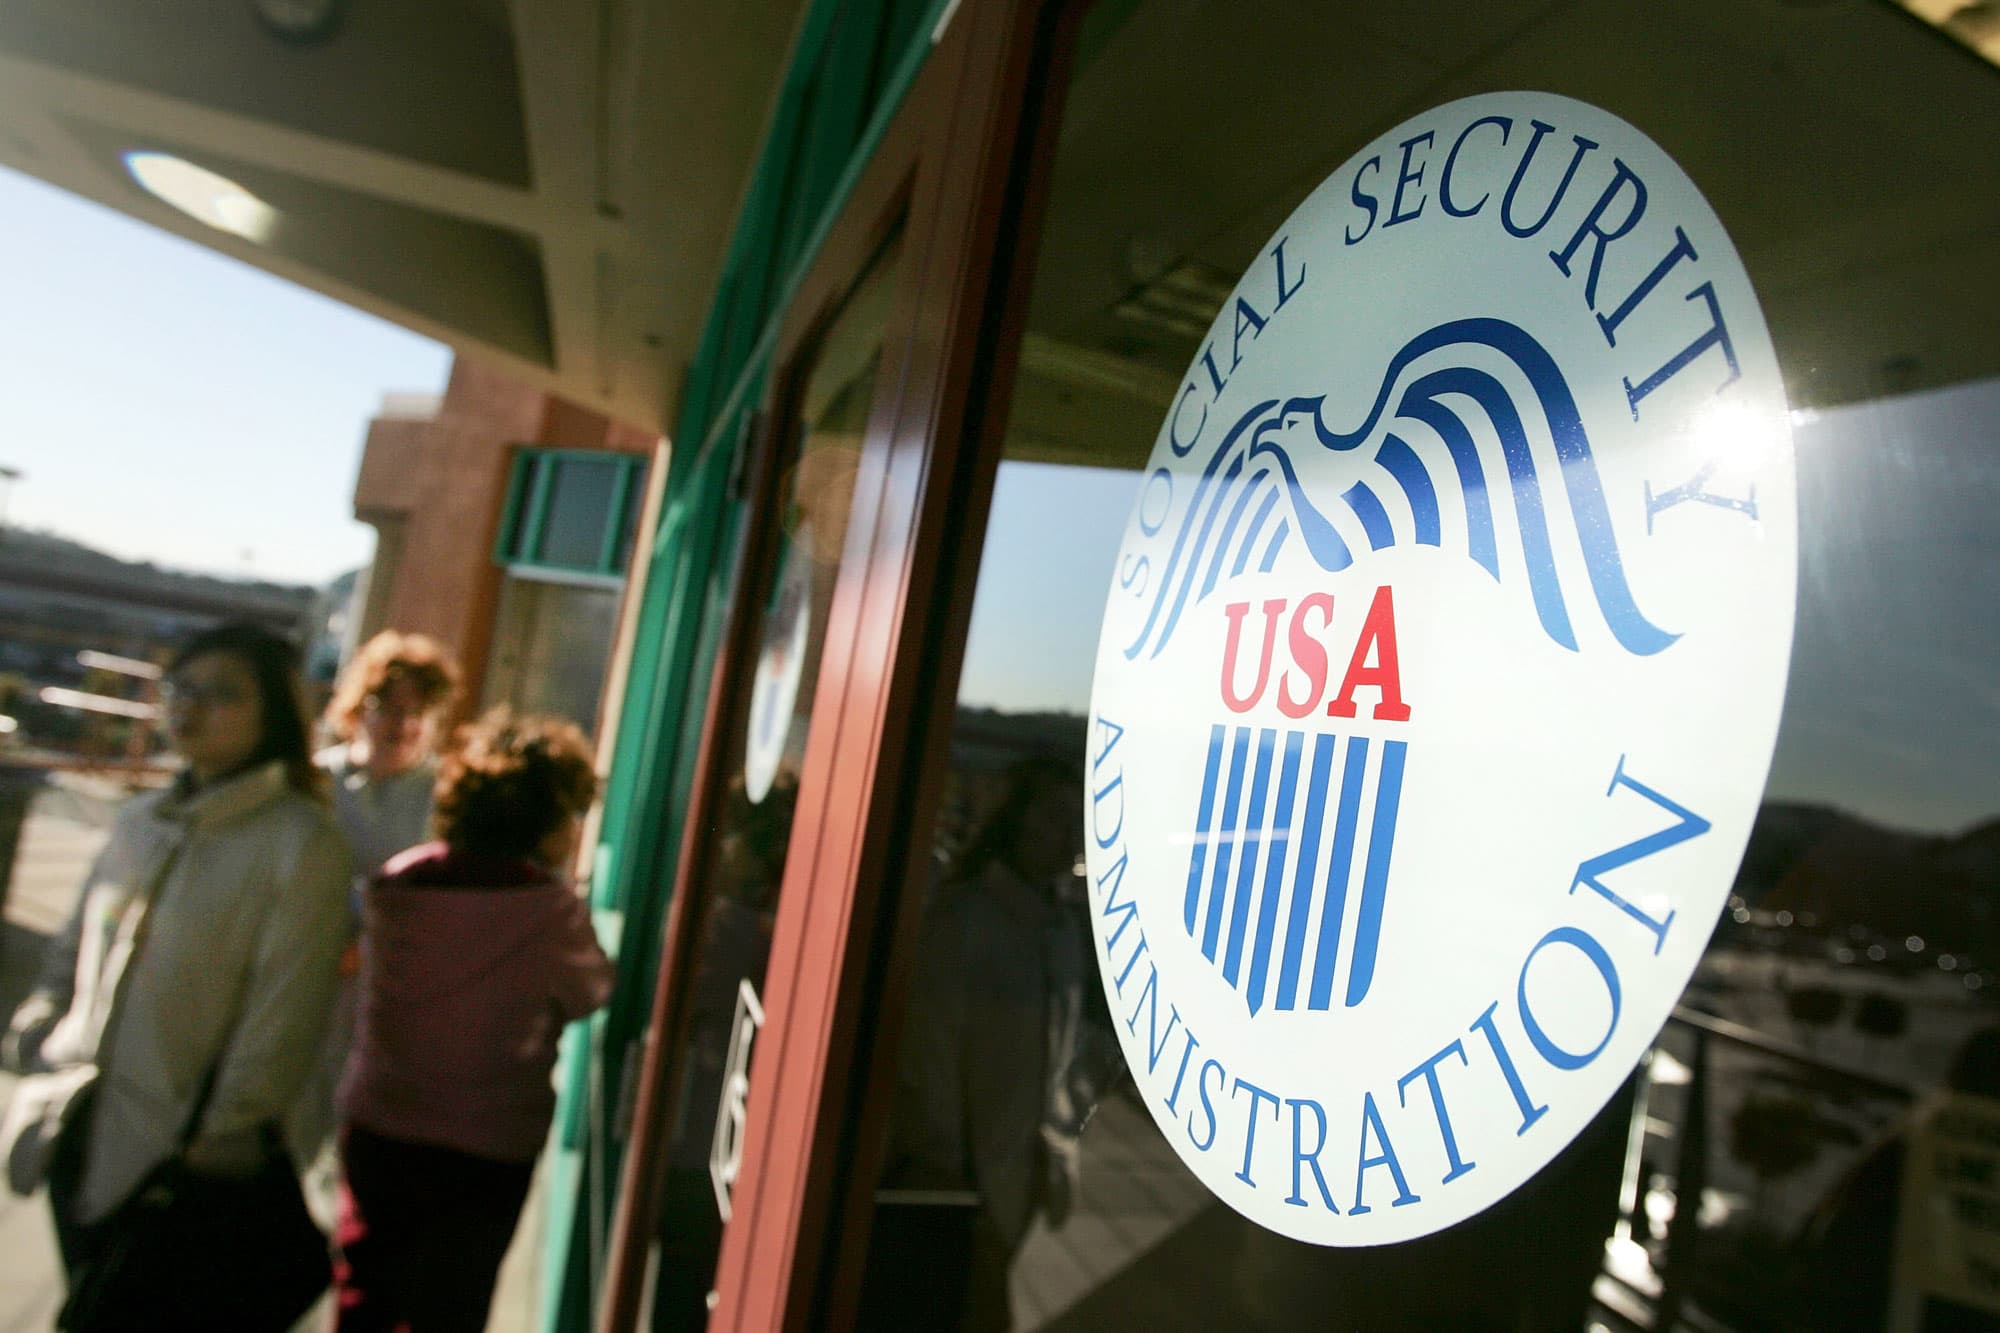 New web tool shows how Social Security cuts could hit your wallet